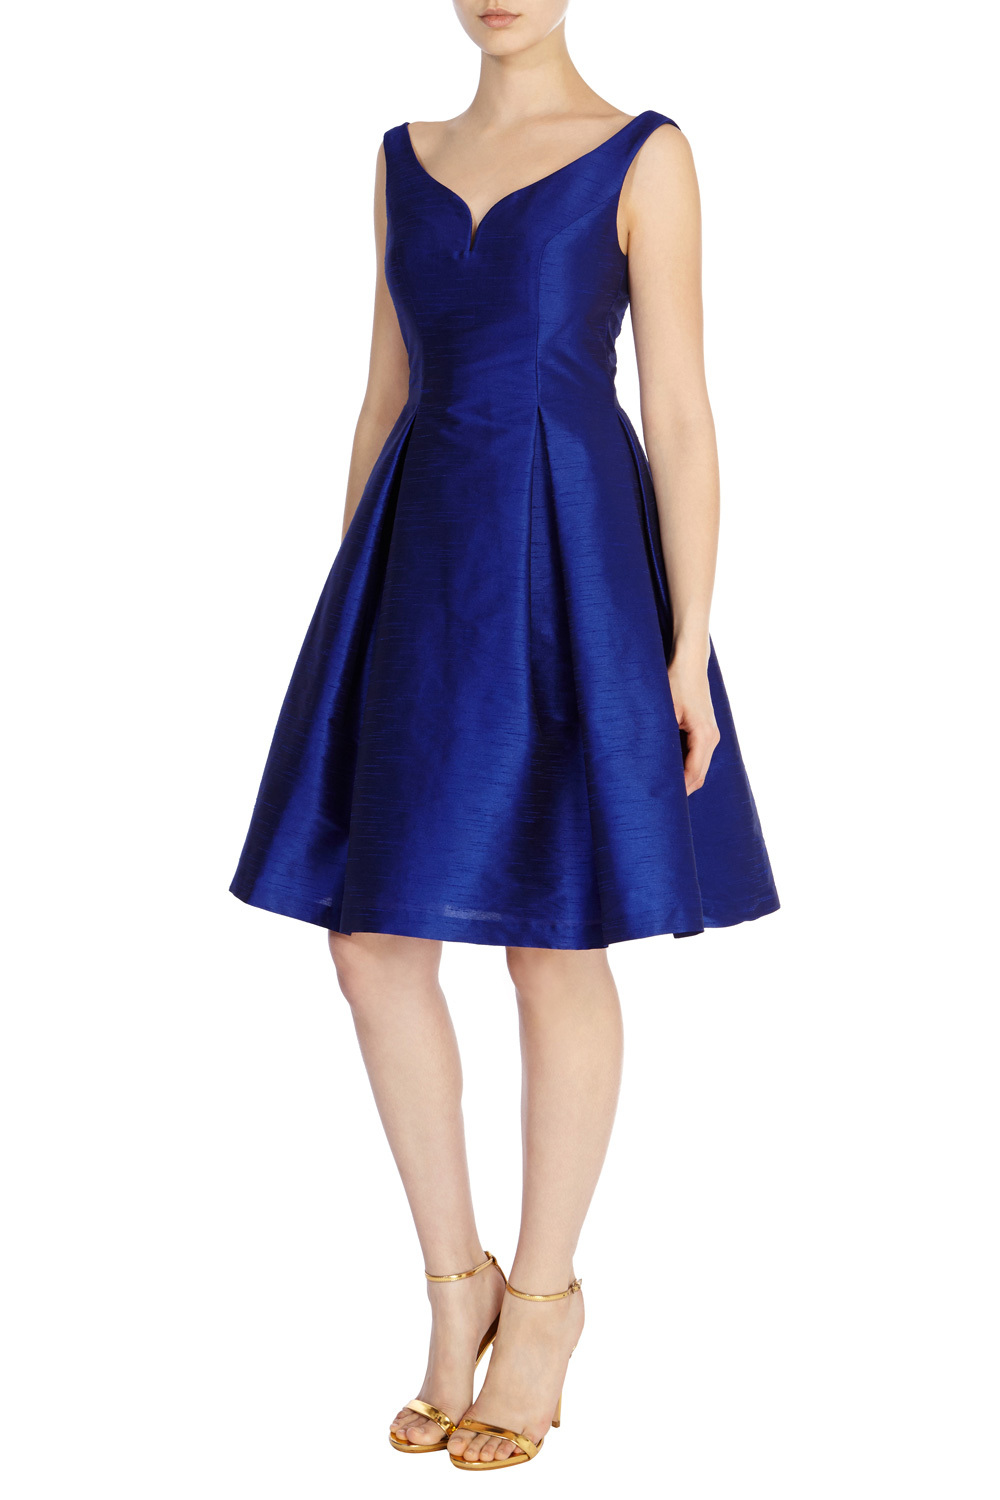 Giuglia Dress - neckline: low v-neck; pattern: plain; sleeve style: sleeveless; style: prom dress; predominant colour: royal blue; occasions: evening, occasion; length: on the knee; fit: fitted at waist & bust; fibres: silk - 100%; hip detail: adds bulk at the hips; sleeve length: sleeveless; texture group: structured shiny - satin/tafetta/silk etc.; pattern type: fabric; season: s/s 2016; wardrobe: event